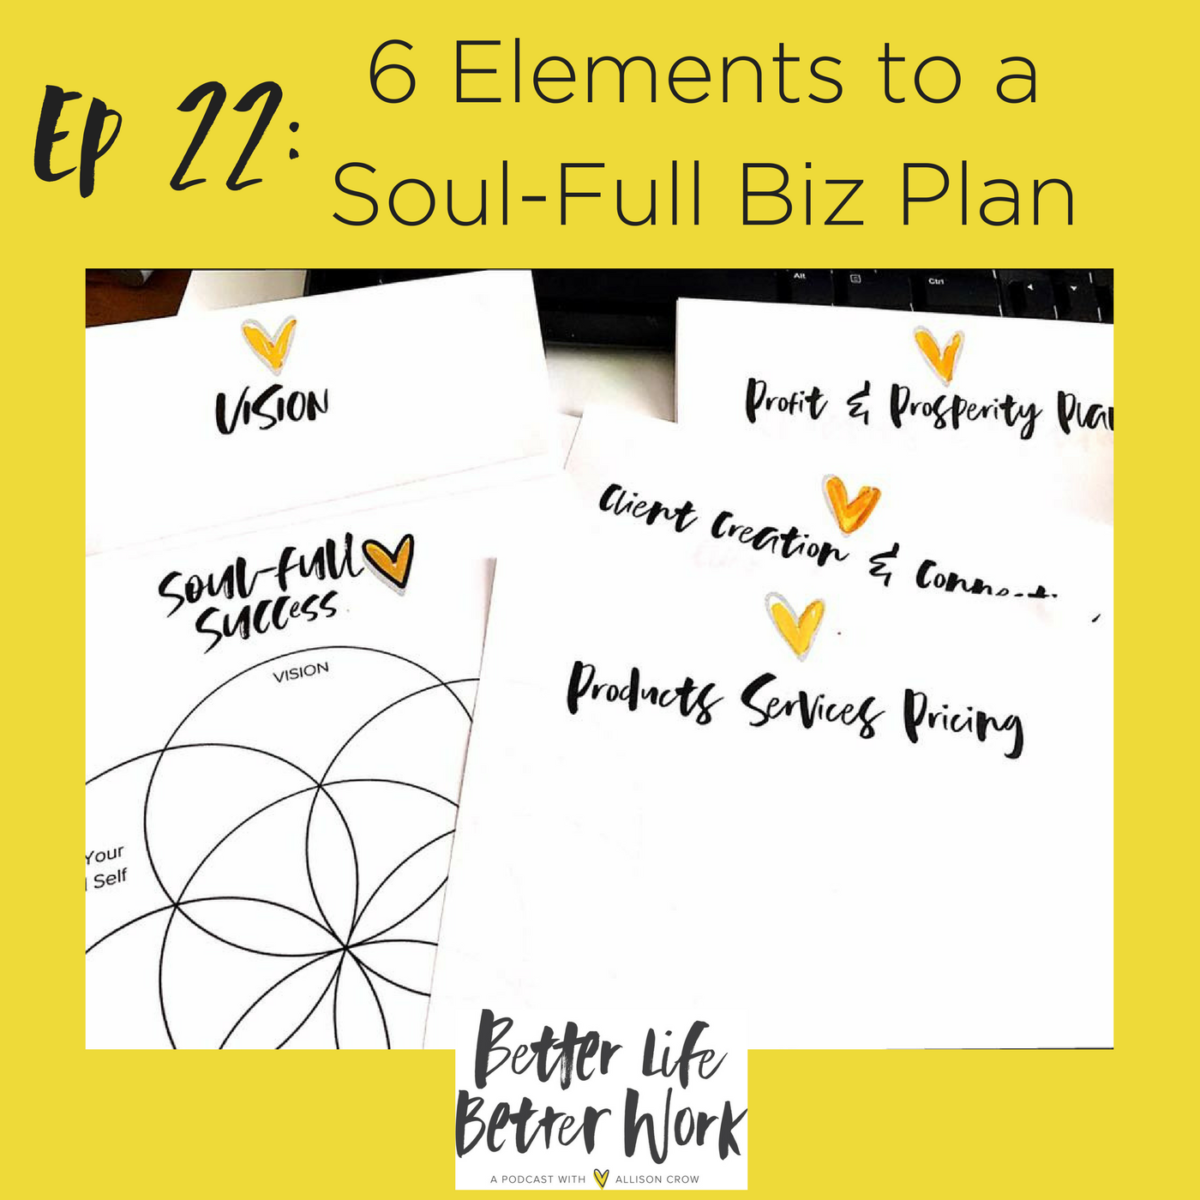 BLBW Ep 22: 6 Elements To A Soul Full Business Plan